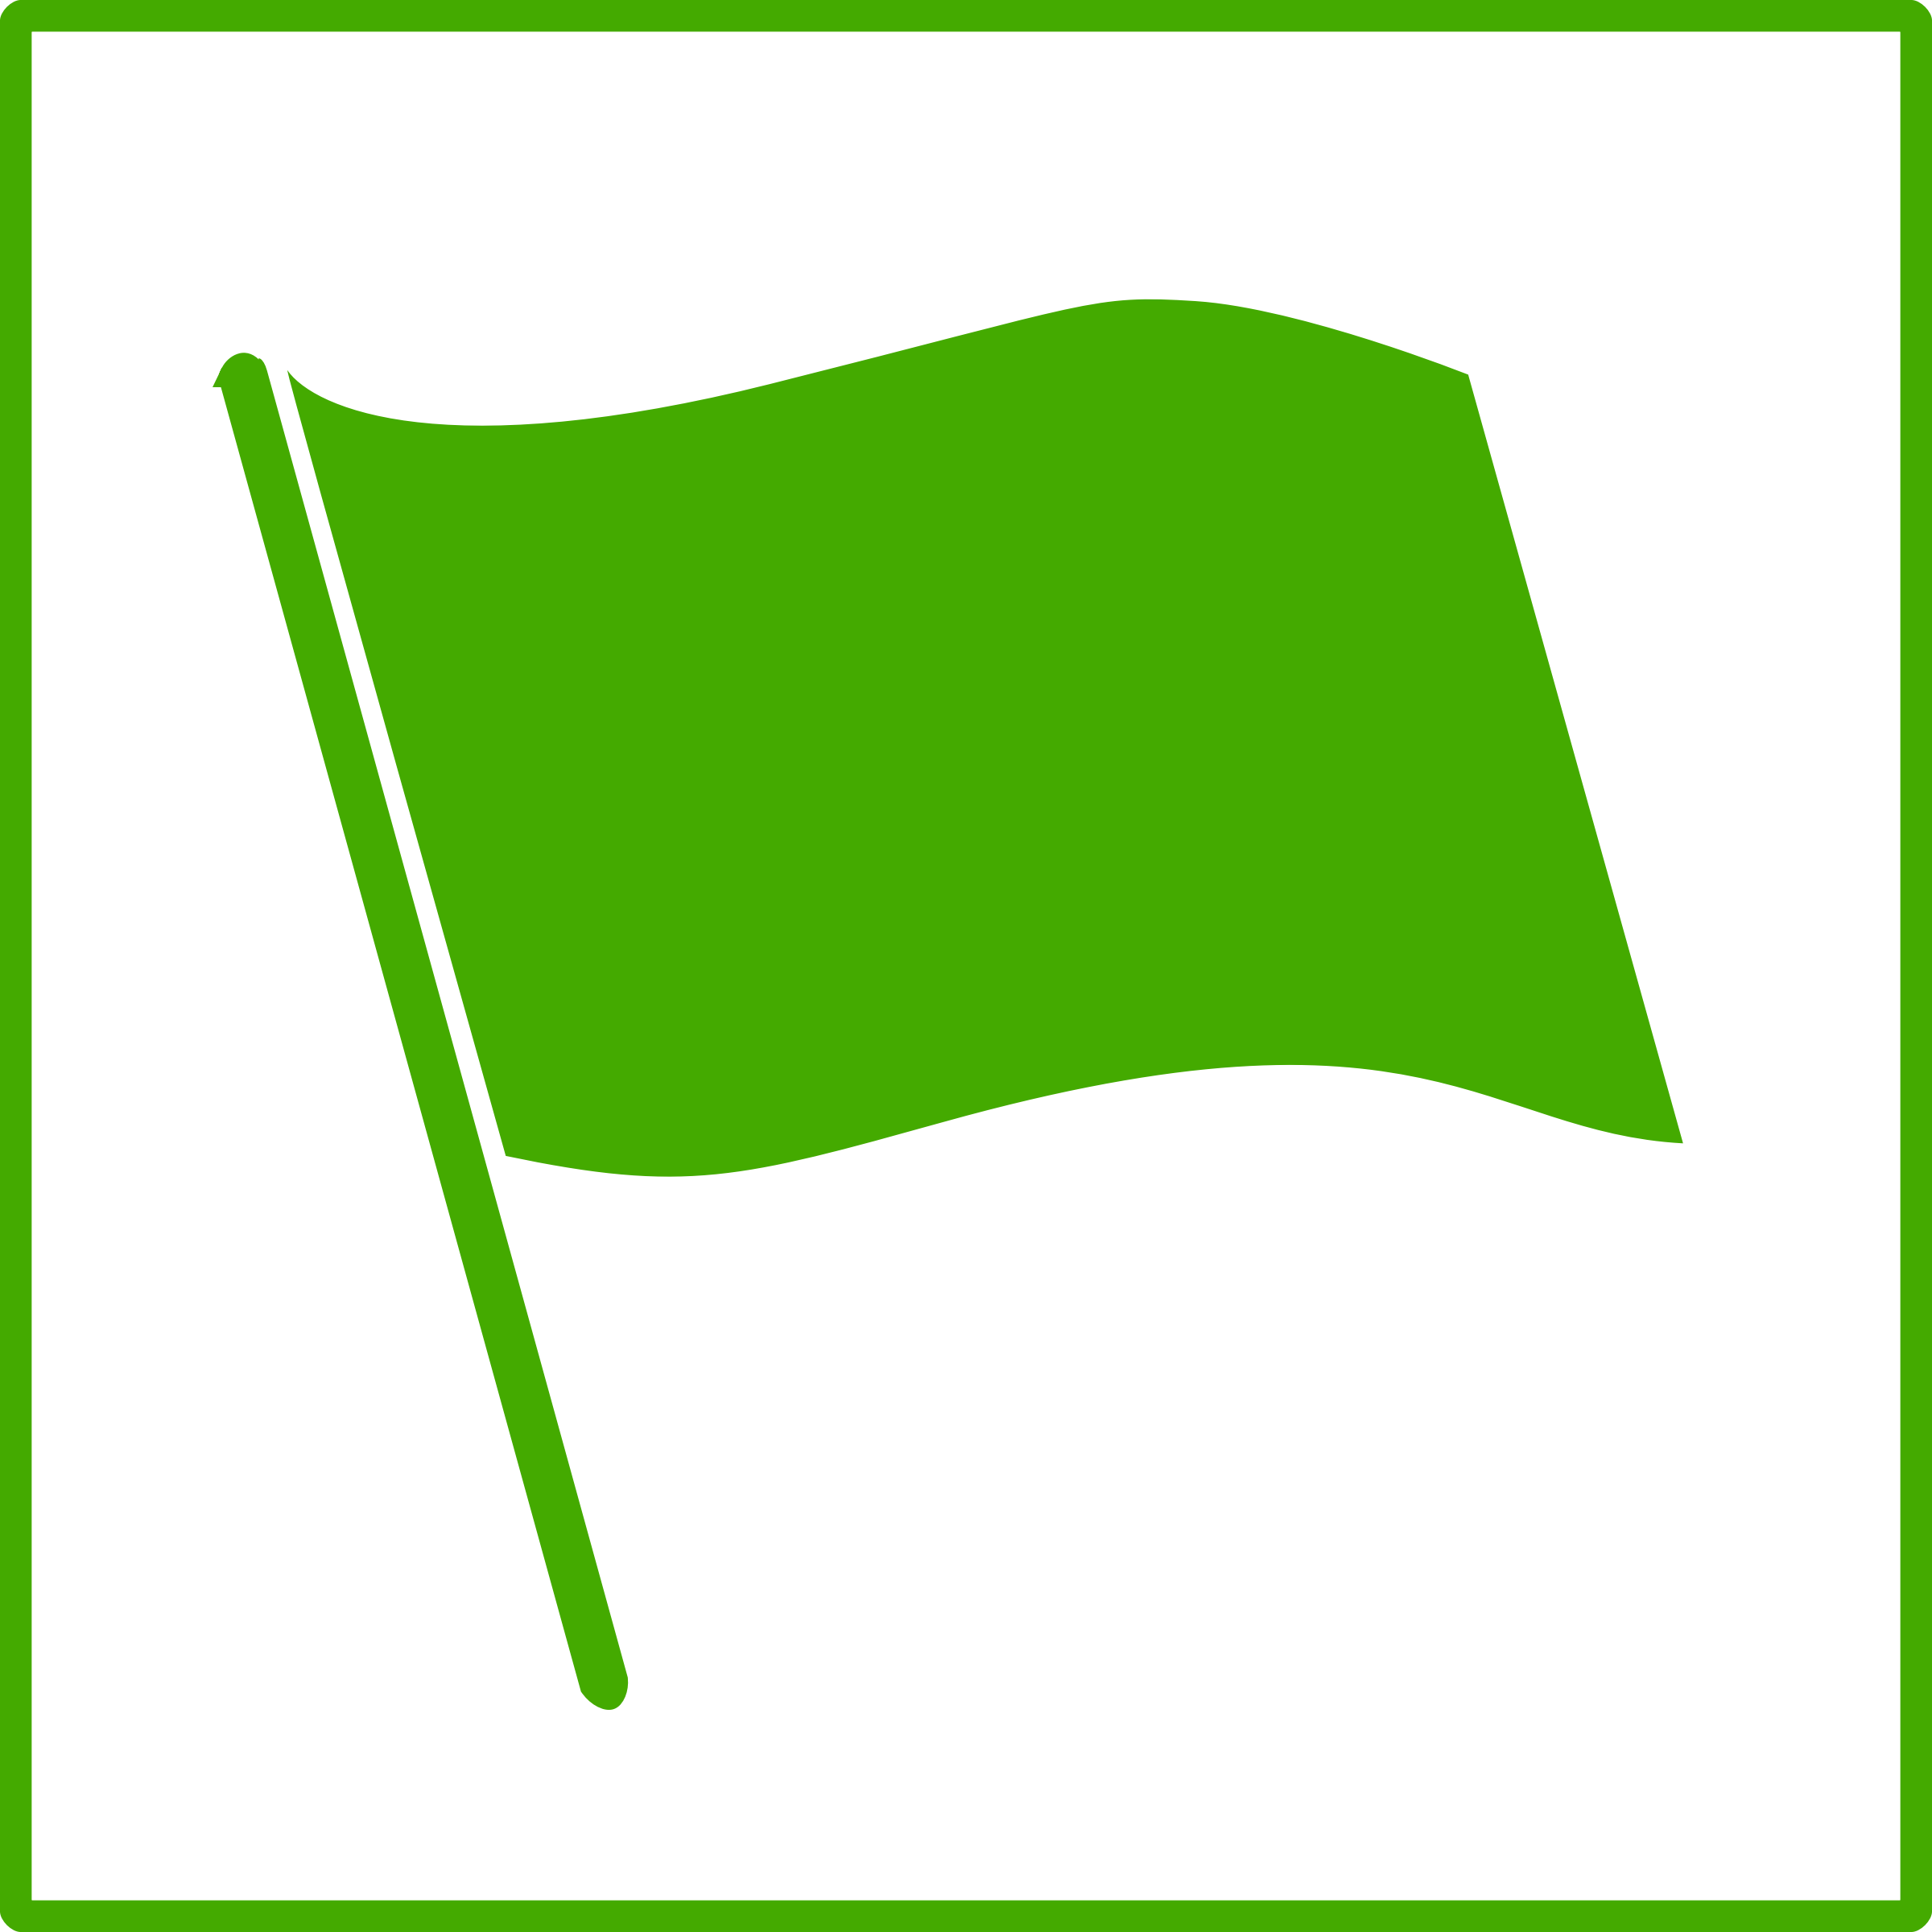 green flags icon png